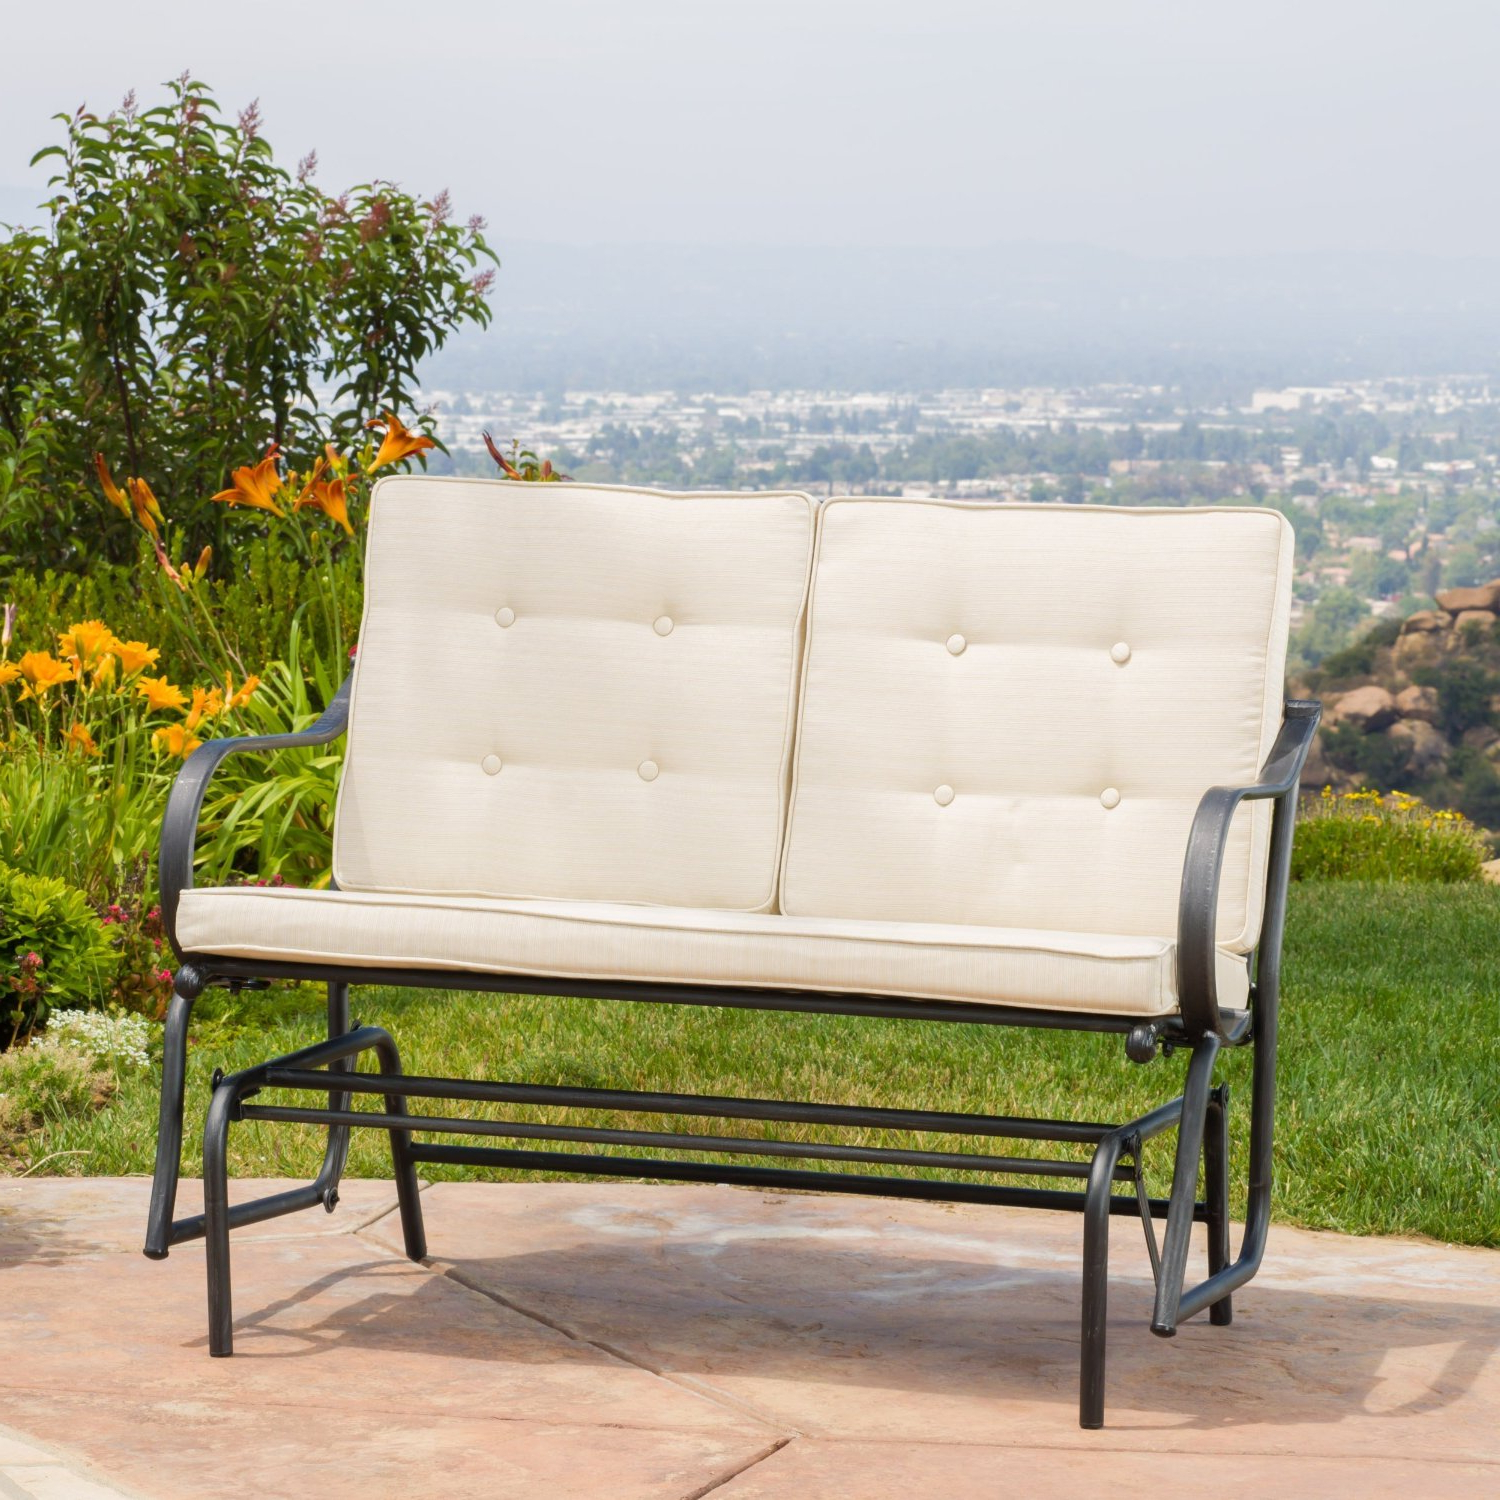 Cushioned Glider Benches With Cushions Intended For 2020 Cheap Outdoor Glider Rocker, Find Outdoor Glider Rocker (Gallery 19 of 30)